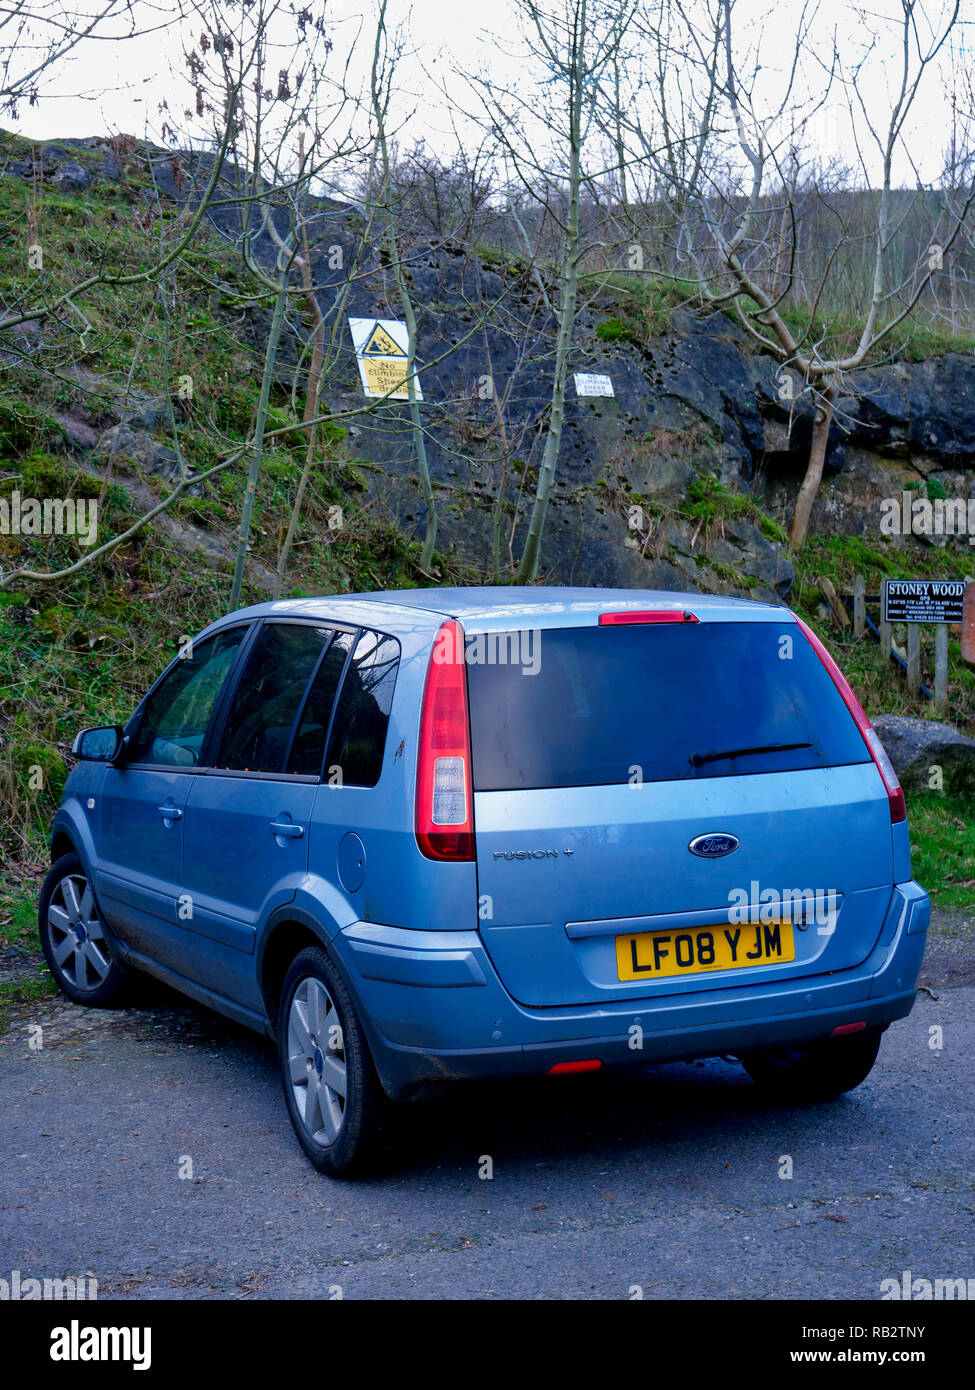 Derbyshire, UK. 06th Jan, 2019. An abandoned light blue Ford Fusion + car parked at Stoney Wood entrance, Wirksworth, Derbyshire, since the New Year has been reported to the Police as possible missing persons or abandoned vehicle, it's near the potentially dangerous old Tarmac Middle Peak Quarry workings Credit: Doug Blane/Alamy Live News Stock Photo